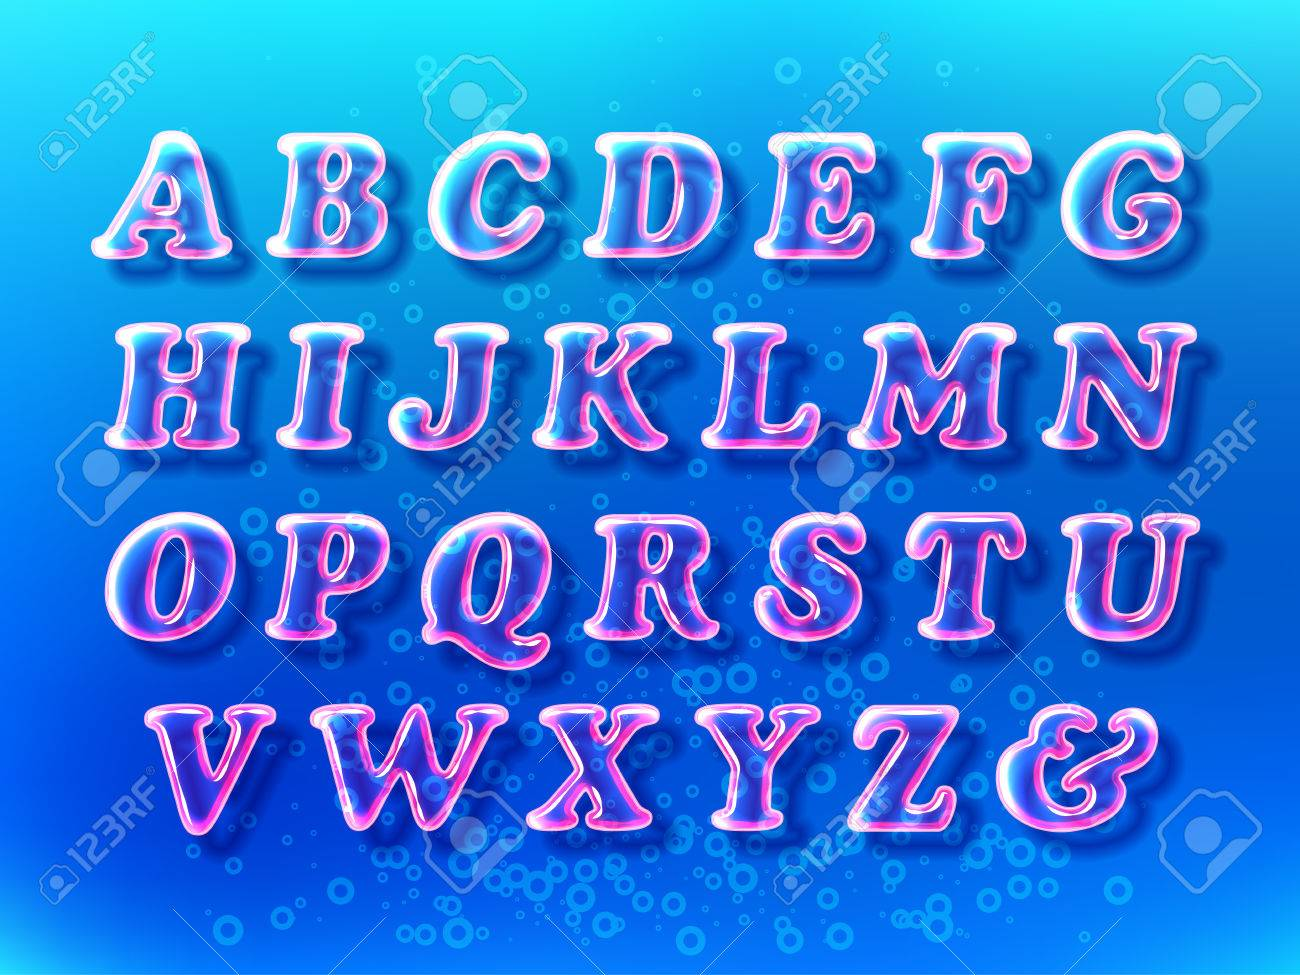 Air bubble alphabet font with transparency and shadows on the blue water background. 3D bulb